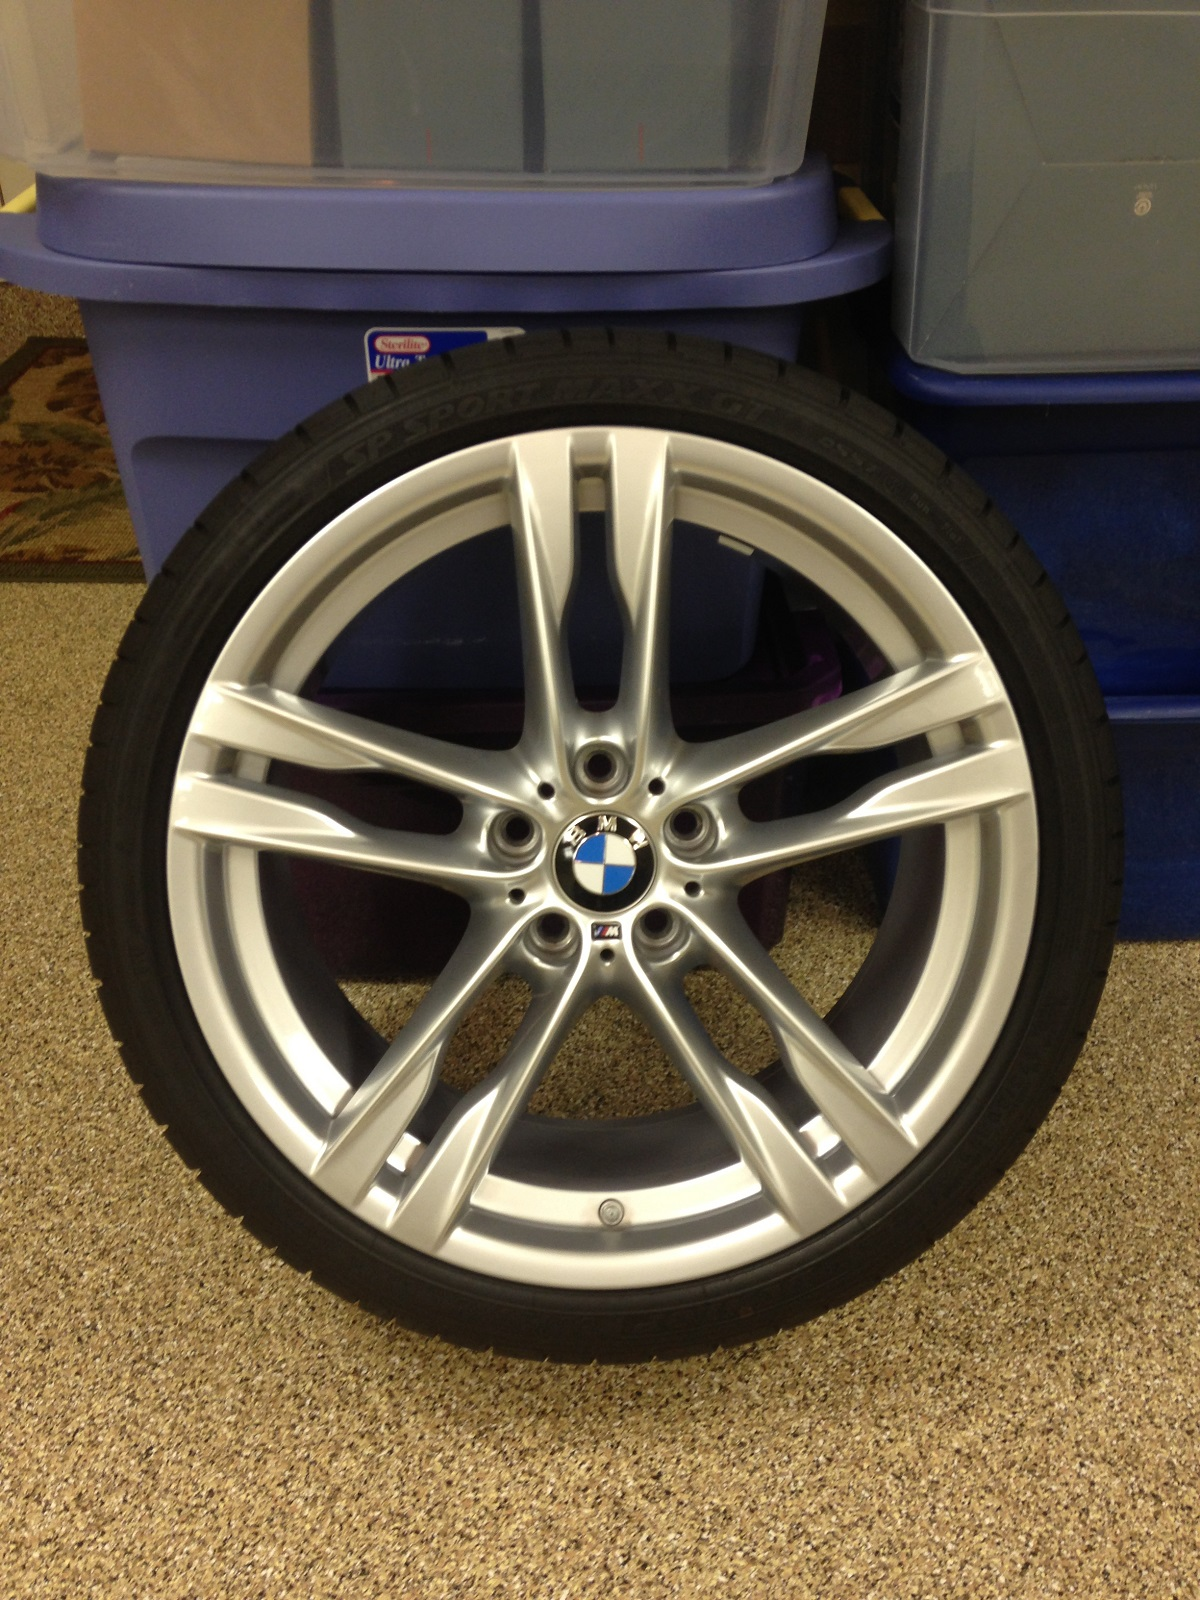 Fs Brand New 2014 650i M Sport Double Spoke Alloy Wheels